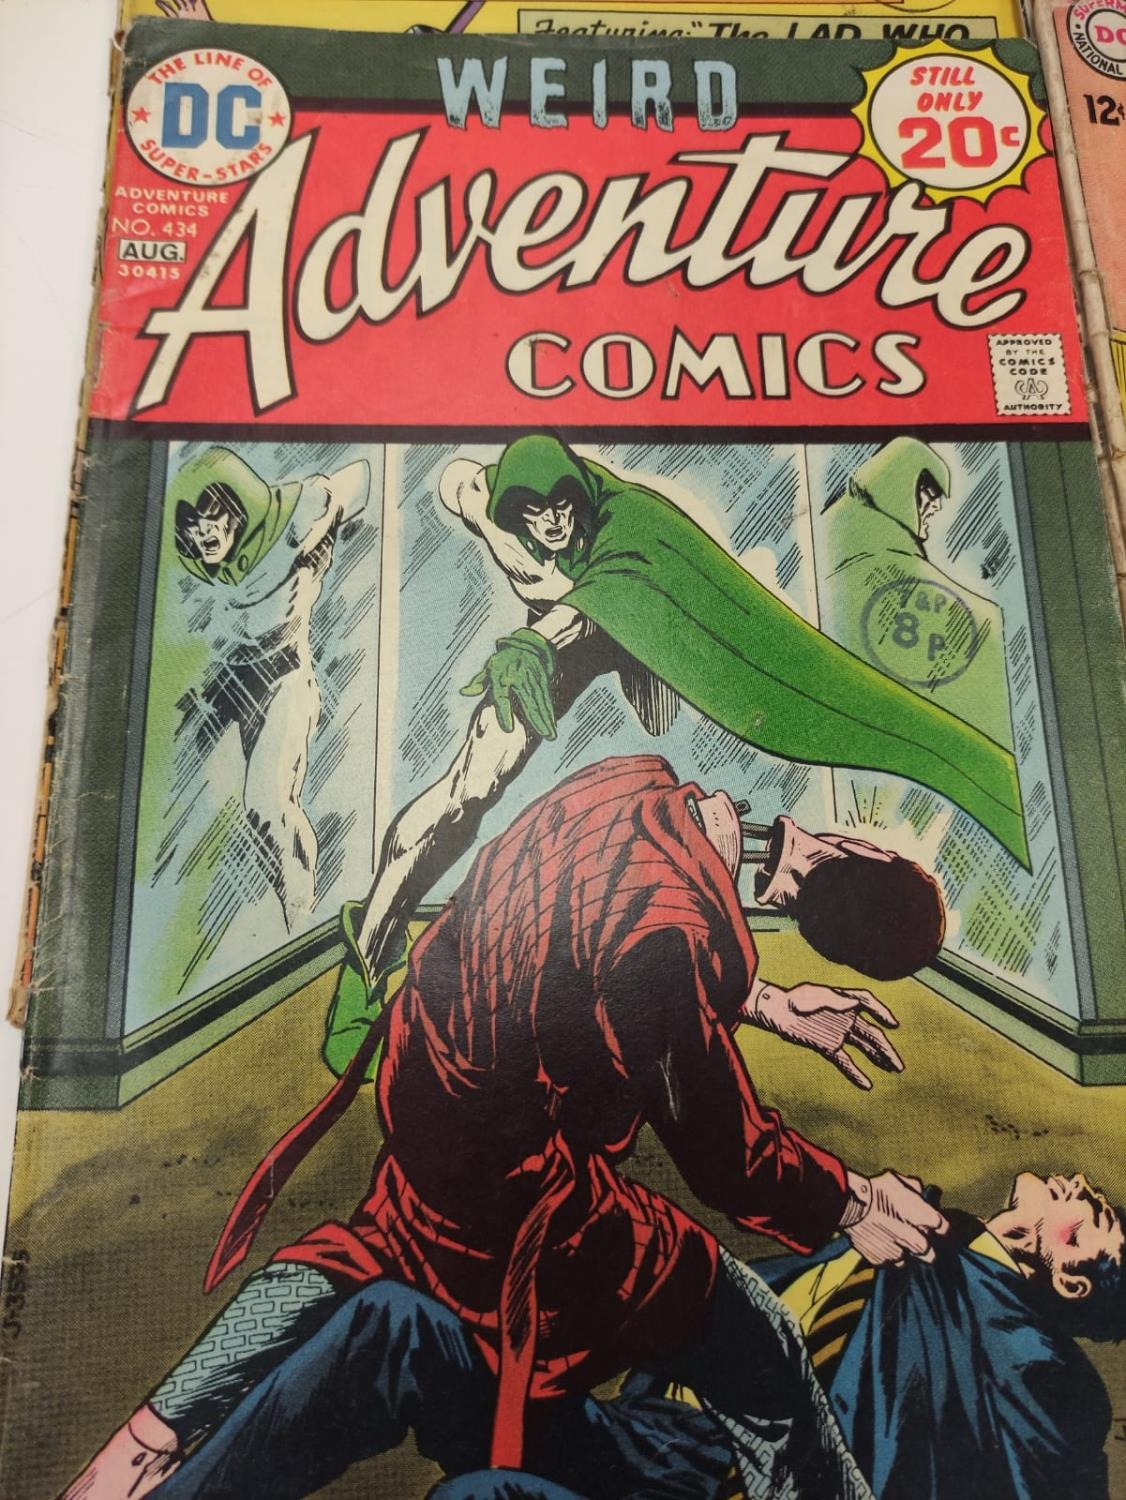 5 editions of DC Adventure Comics featuring Super-boy. - Image 2 of 19